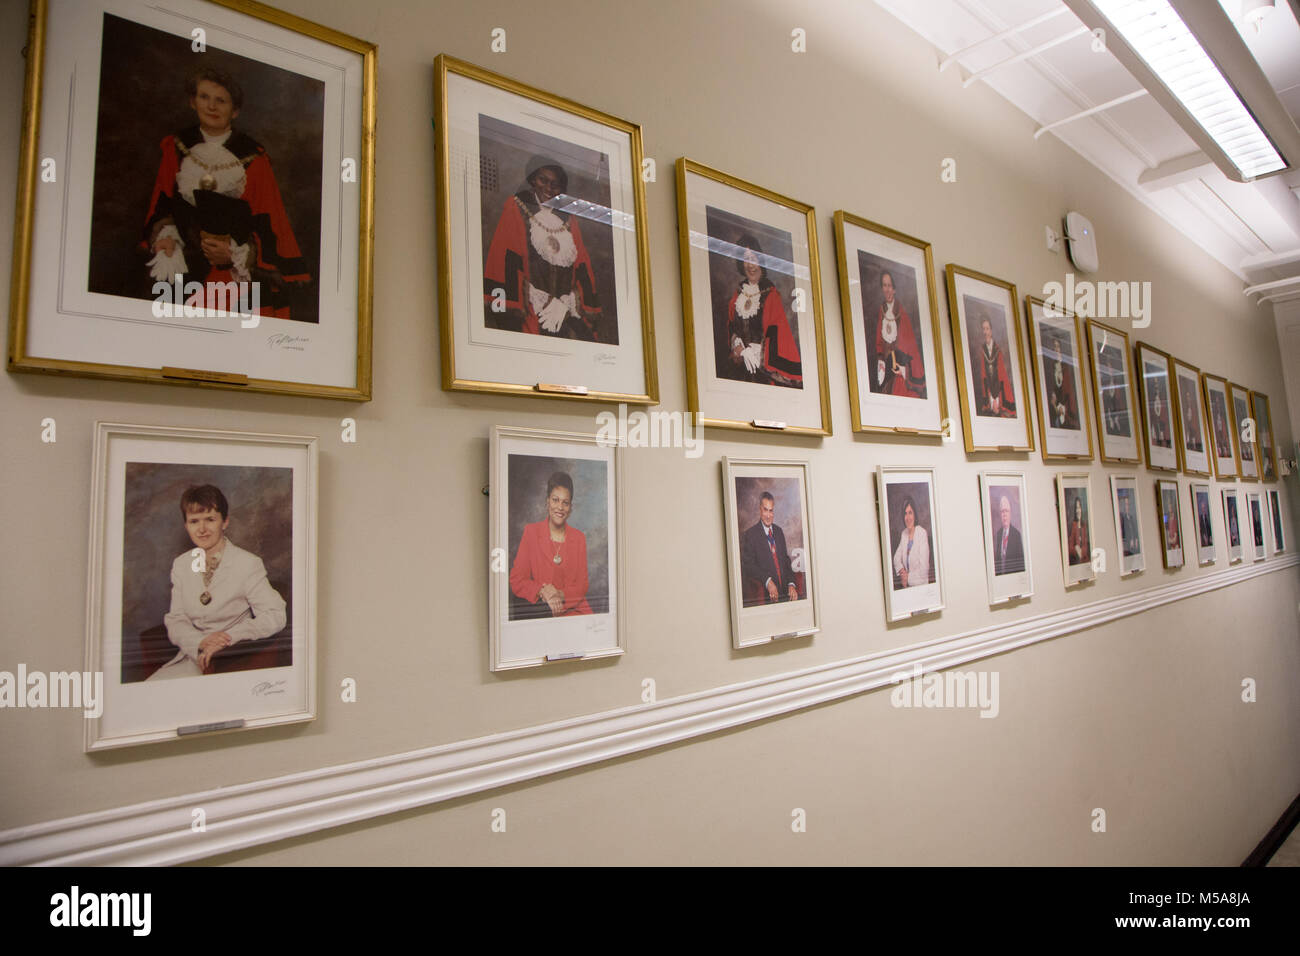 A wall a Barnet Town Hall featuring framed photos of past Mayors - Stock Image